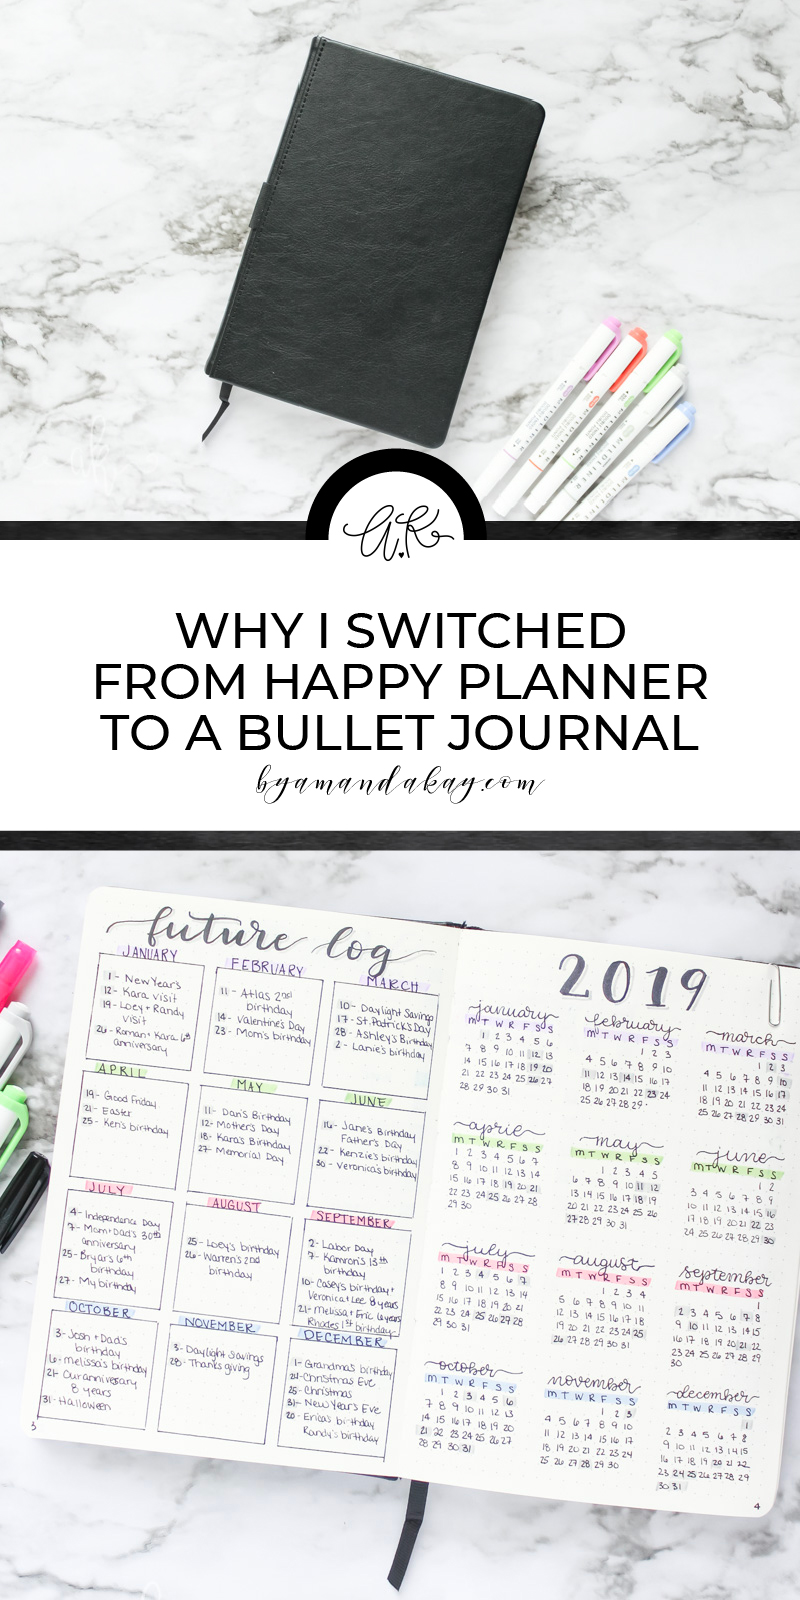 Why I changed to a bullet journal